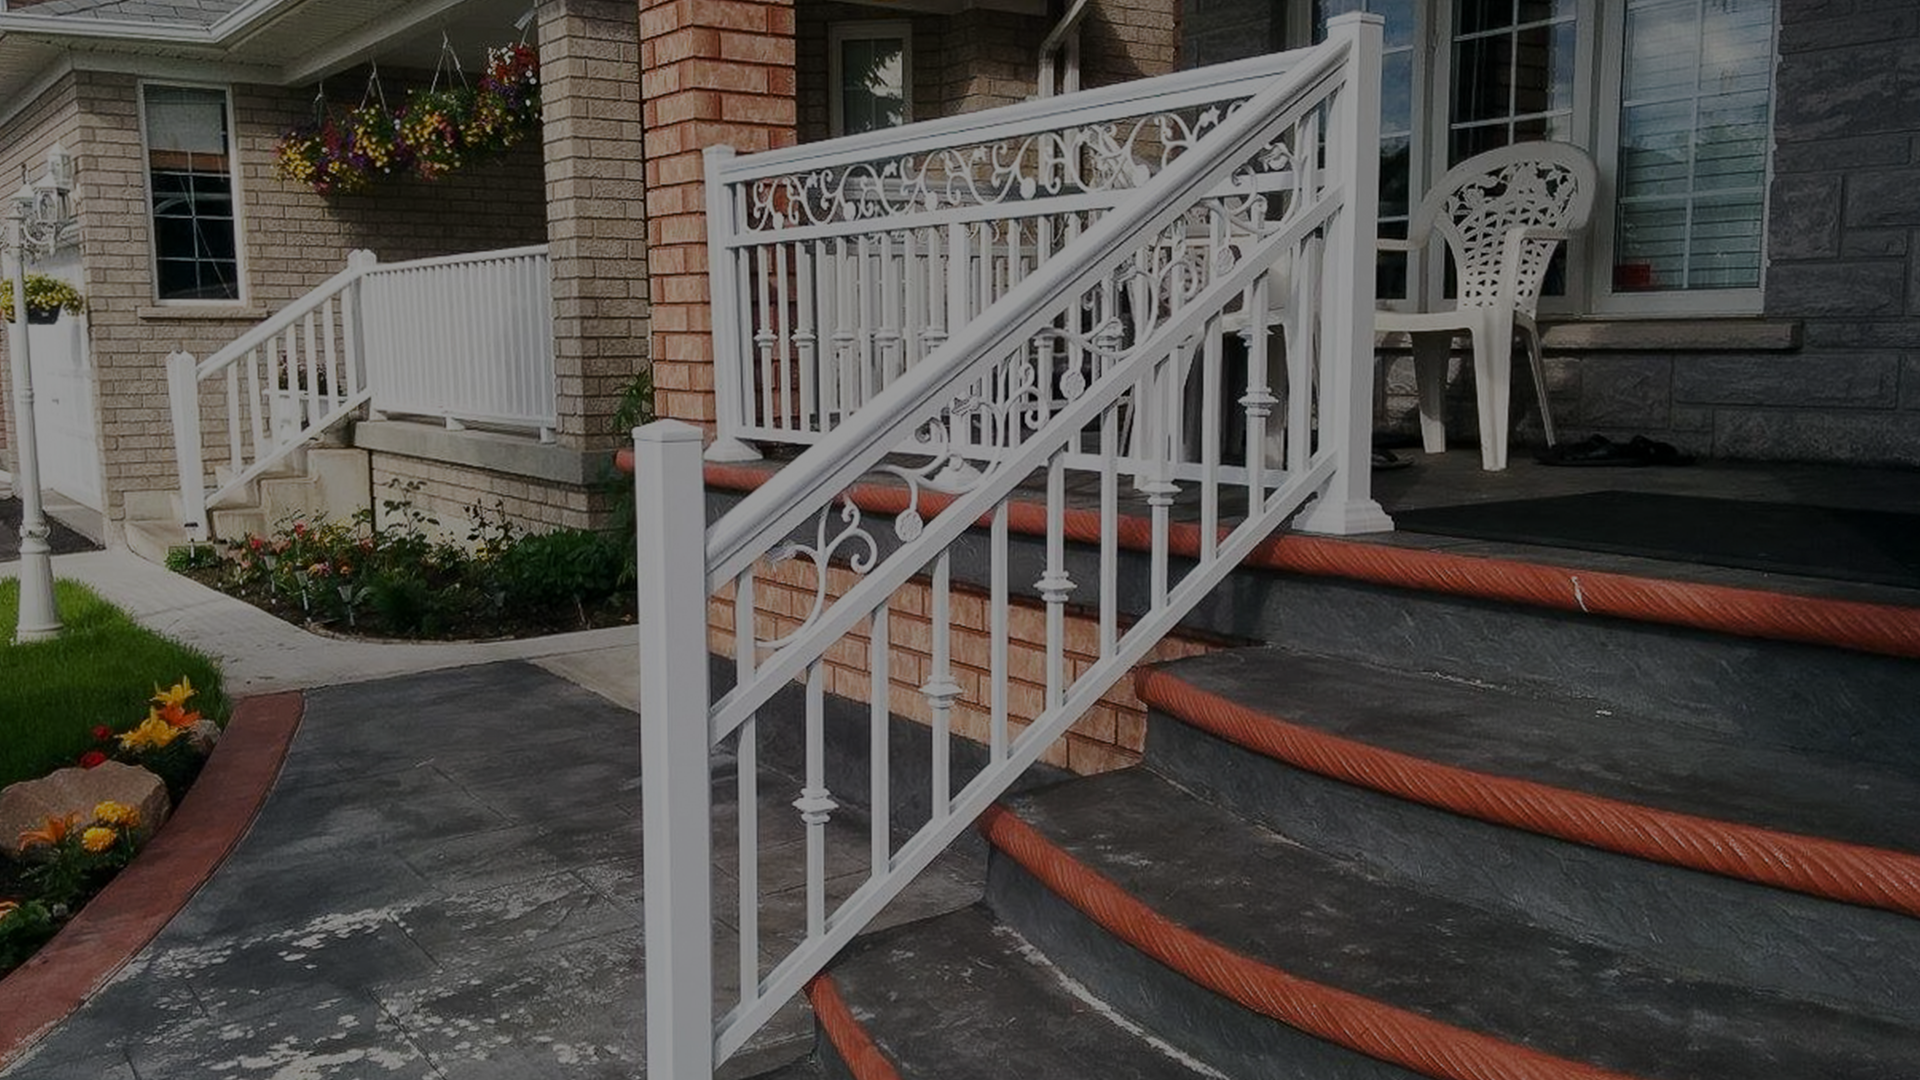 BEAUTIFUL DECORATIVE RAILINGS